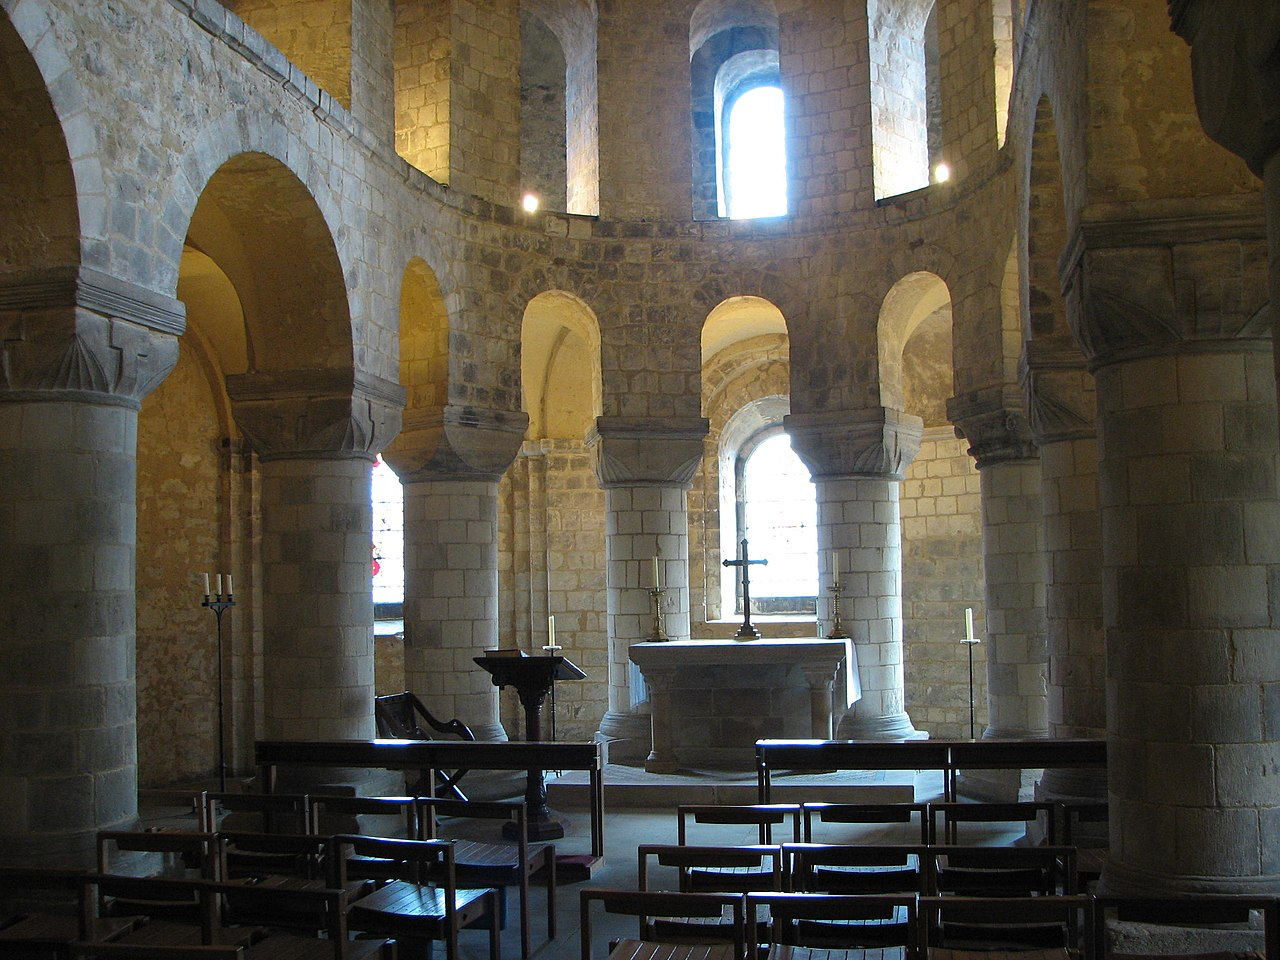 St John's Chapel, inside the White Tower